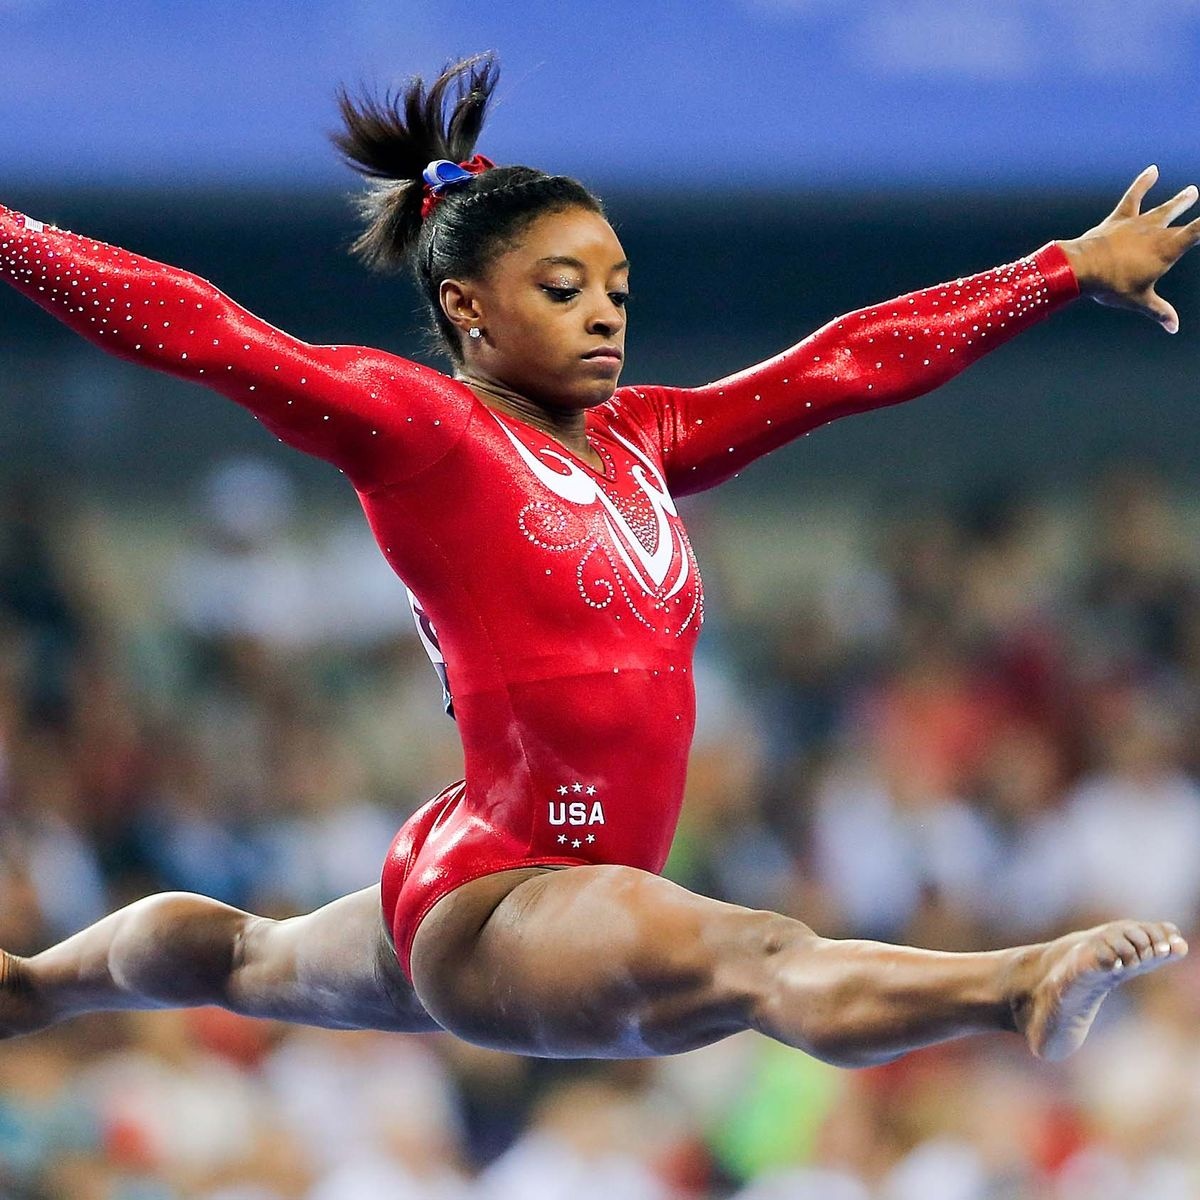 Simone Biles - The most decorated American gymnast in history